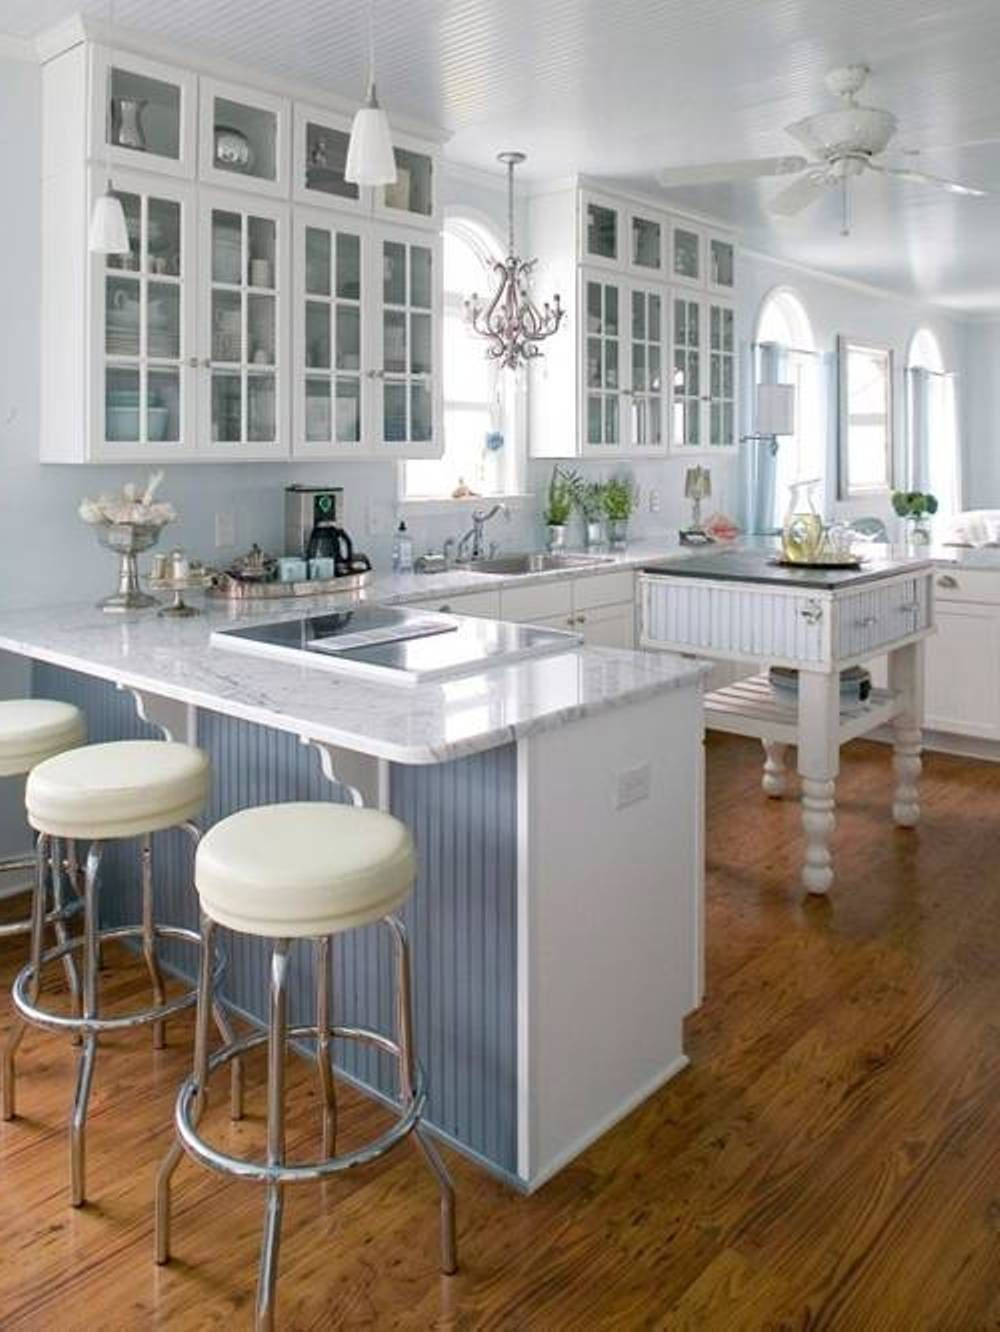 Small Kitchen Remodel Open Floor Plan in 2020 | Kitchen remodel small, Kitchen design open ...